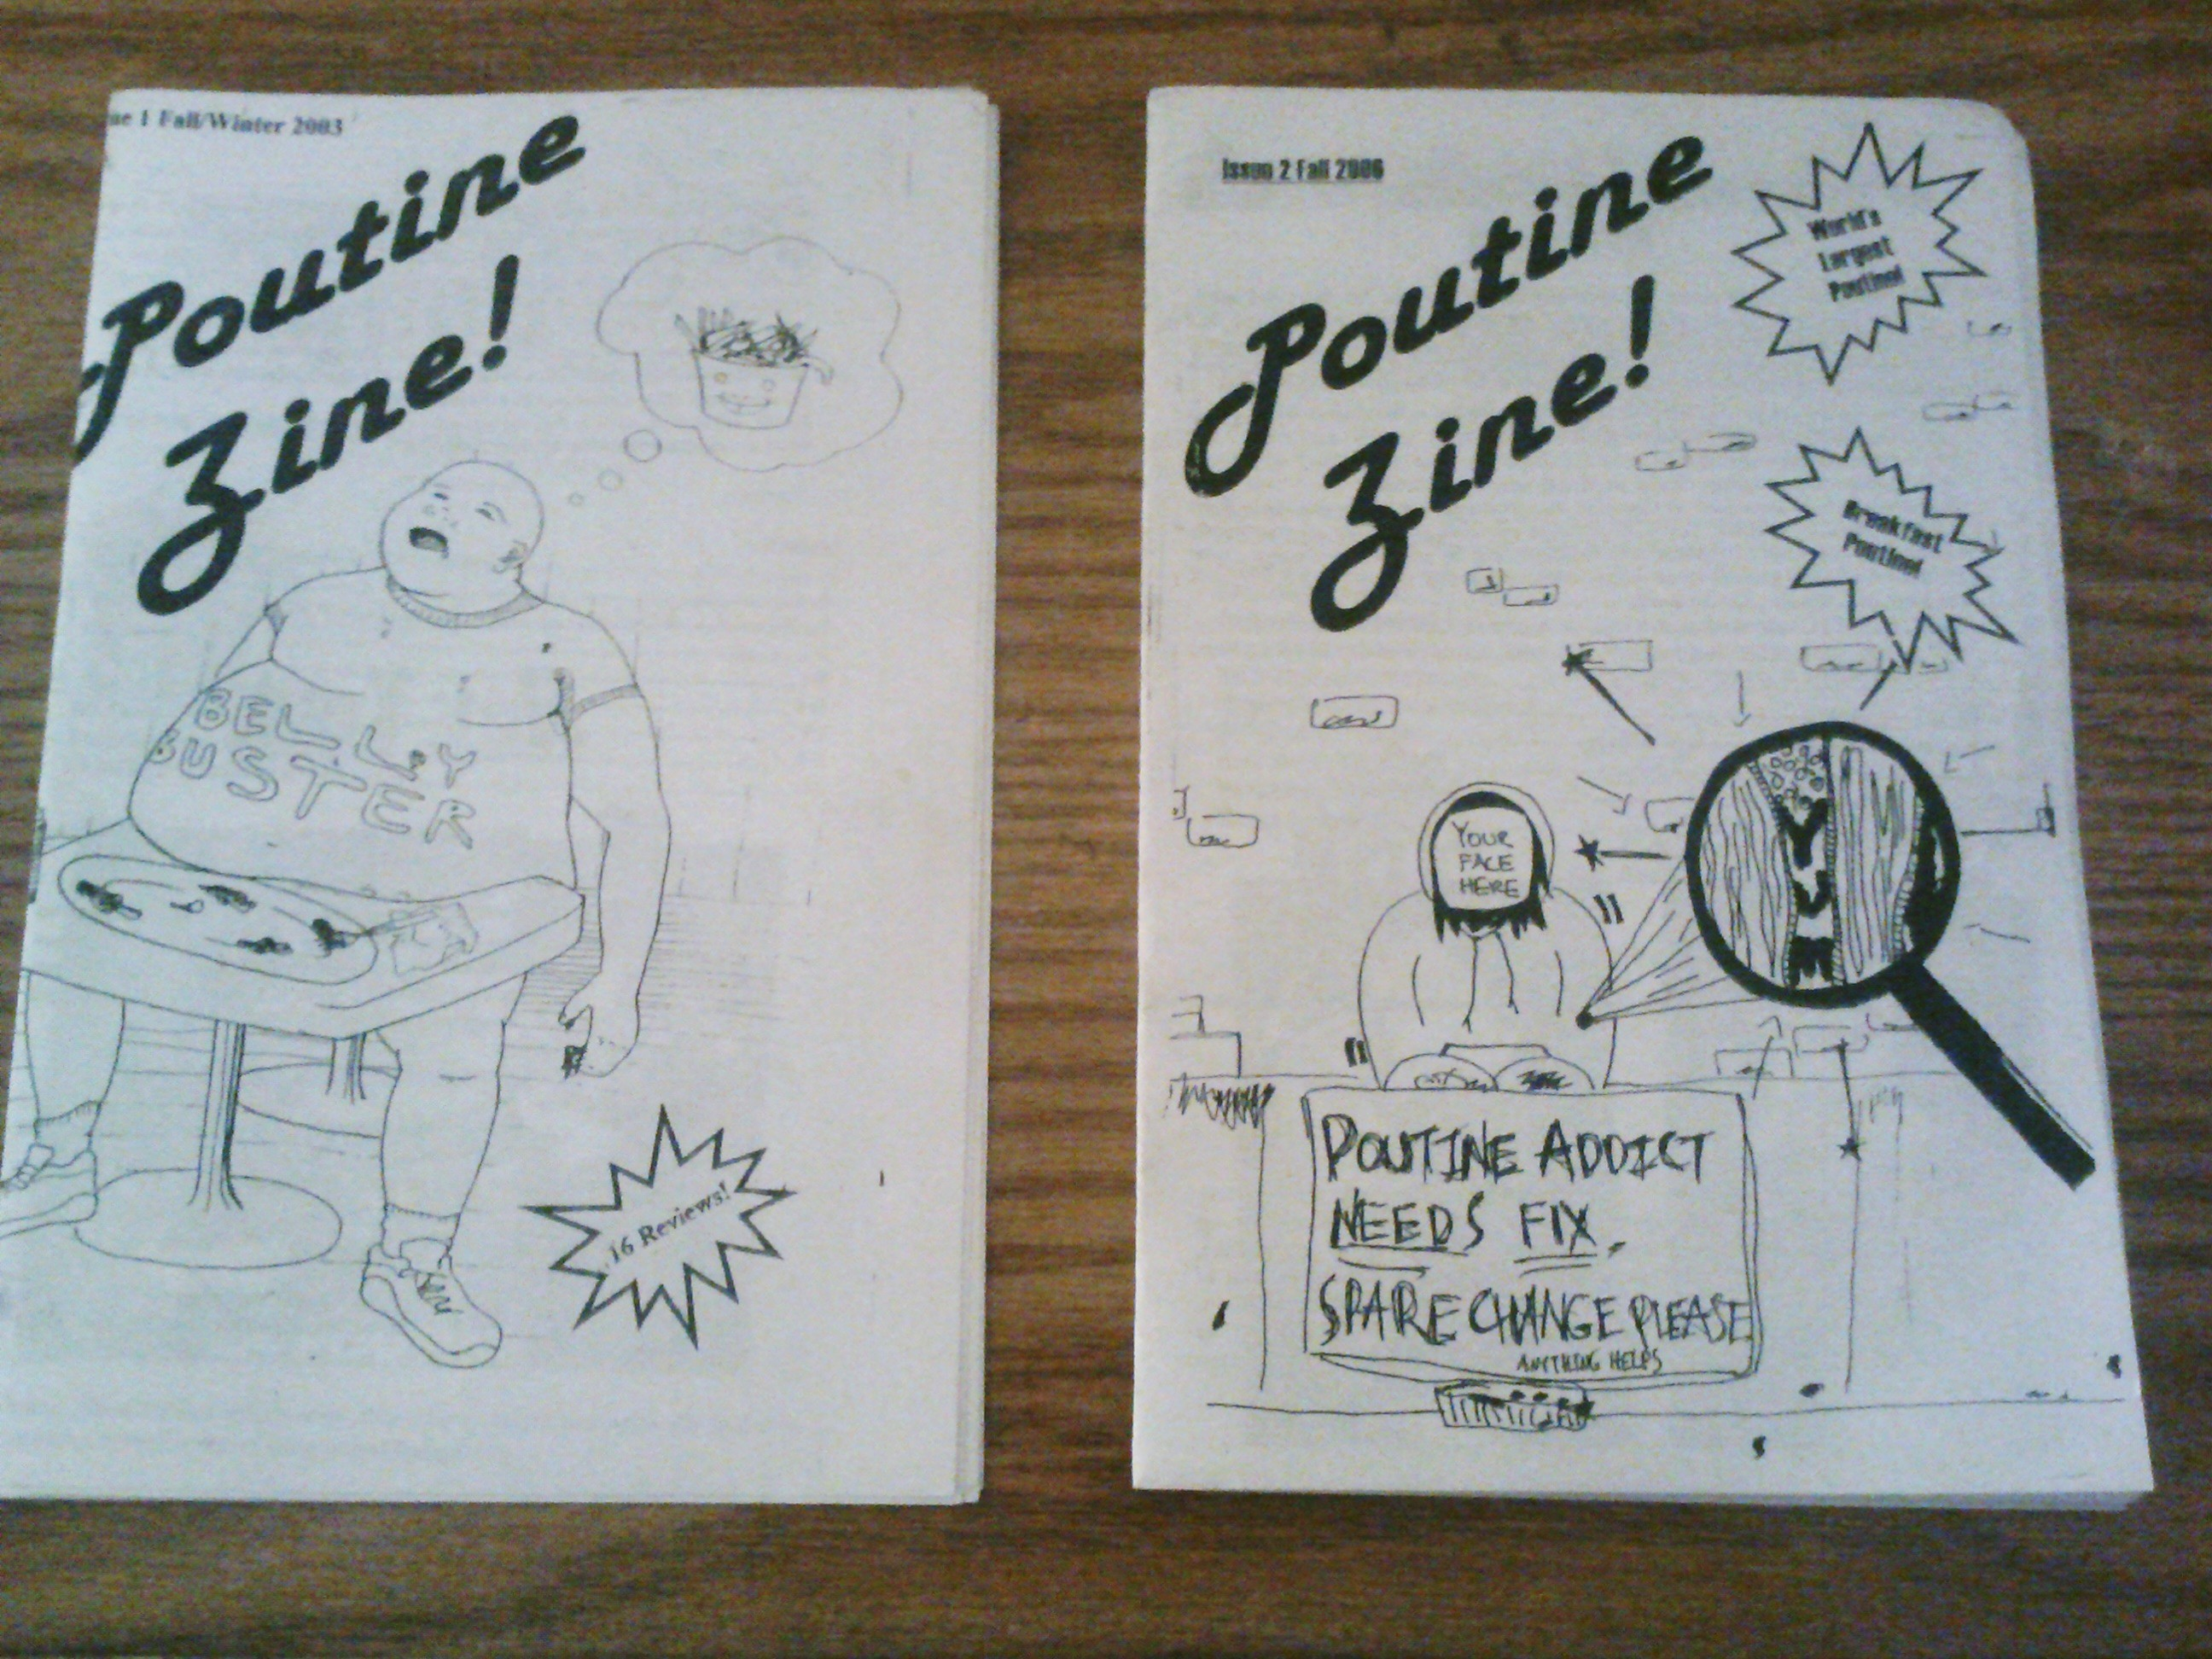 photo of Poutine zine, issues 1 & 2